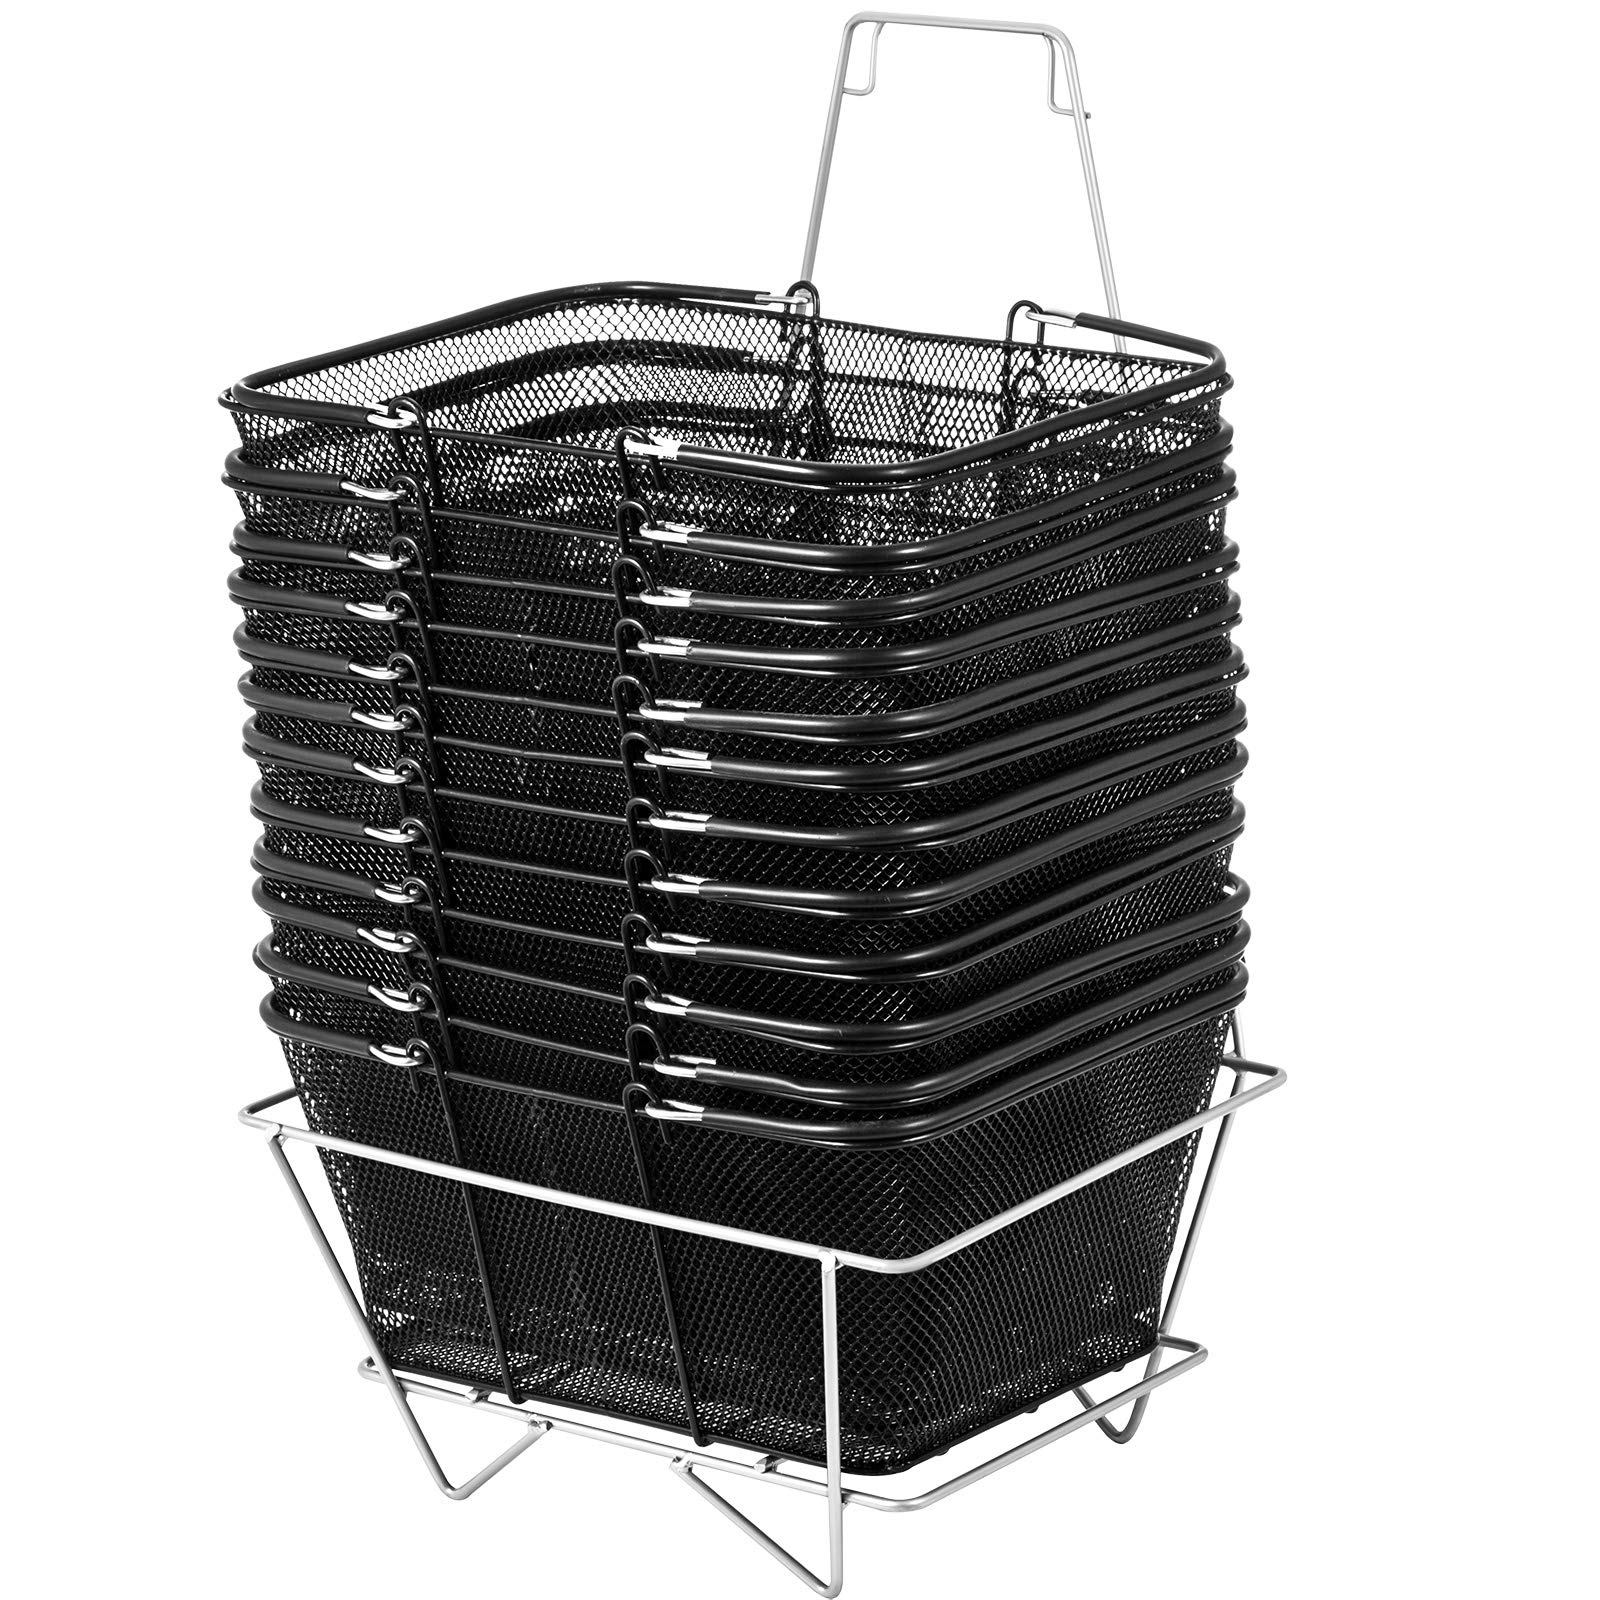 Mophorn Shopping Basket 12PCS Black Wire Basket Metal Shopping Baskets with Handles Black Wire Mesh for Retail Store (16 x 12 x 7 inch, Black)